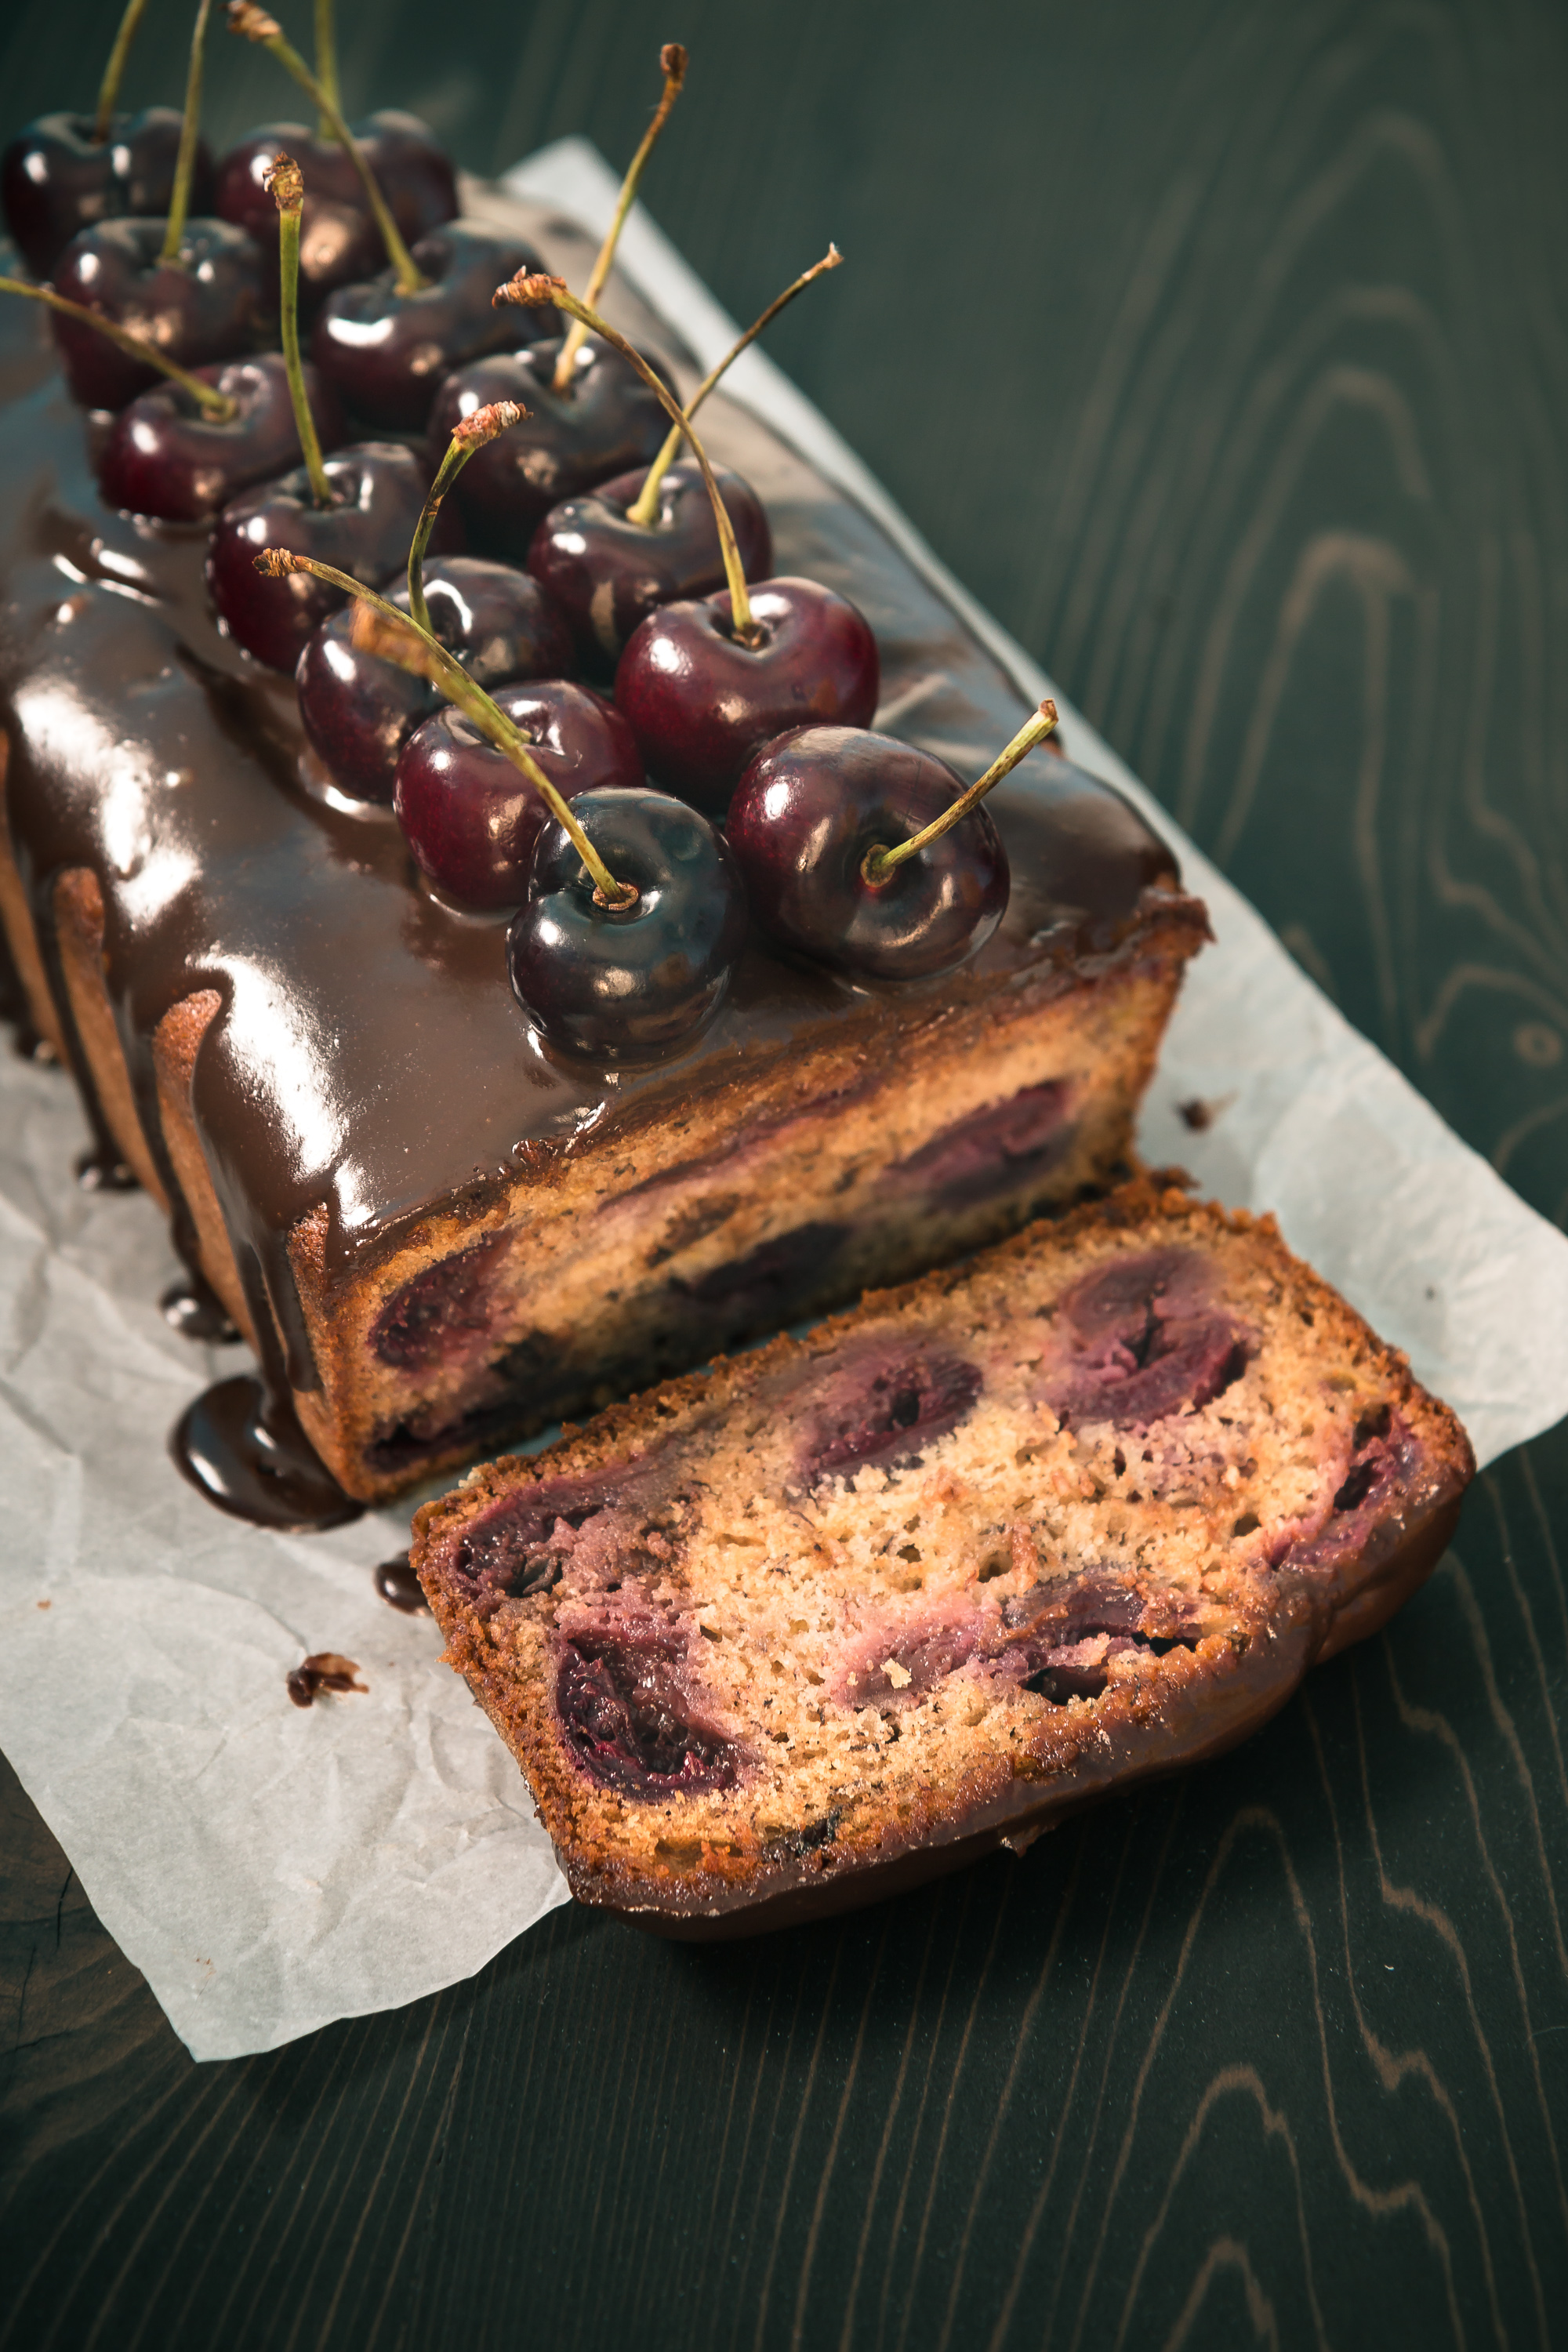 The Road to Honey's Most Popular Recipes of 2016 - Chocolate Cherry Banana Bread - This elegant Chocolate Cherry Banana Bread is moist & delicious & sure to impress with juicy cherries, bits of chocolate, & a chocolate honey glaze.